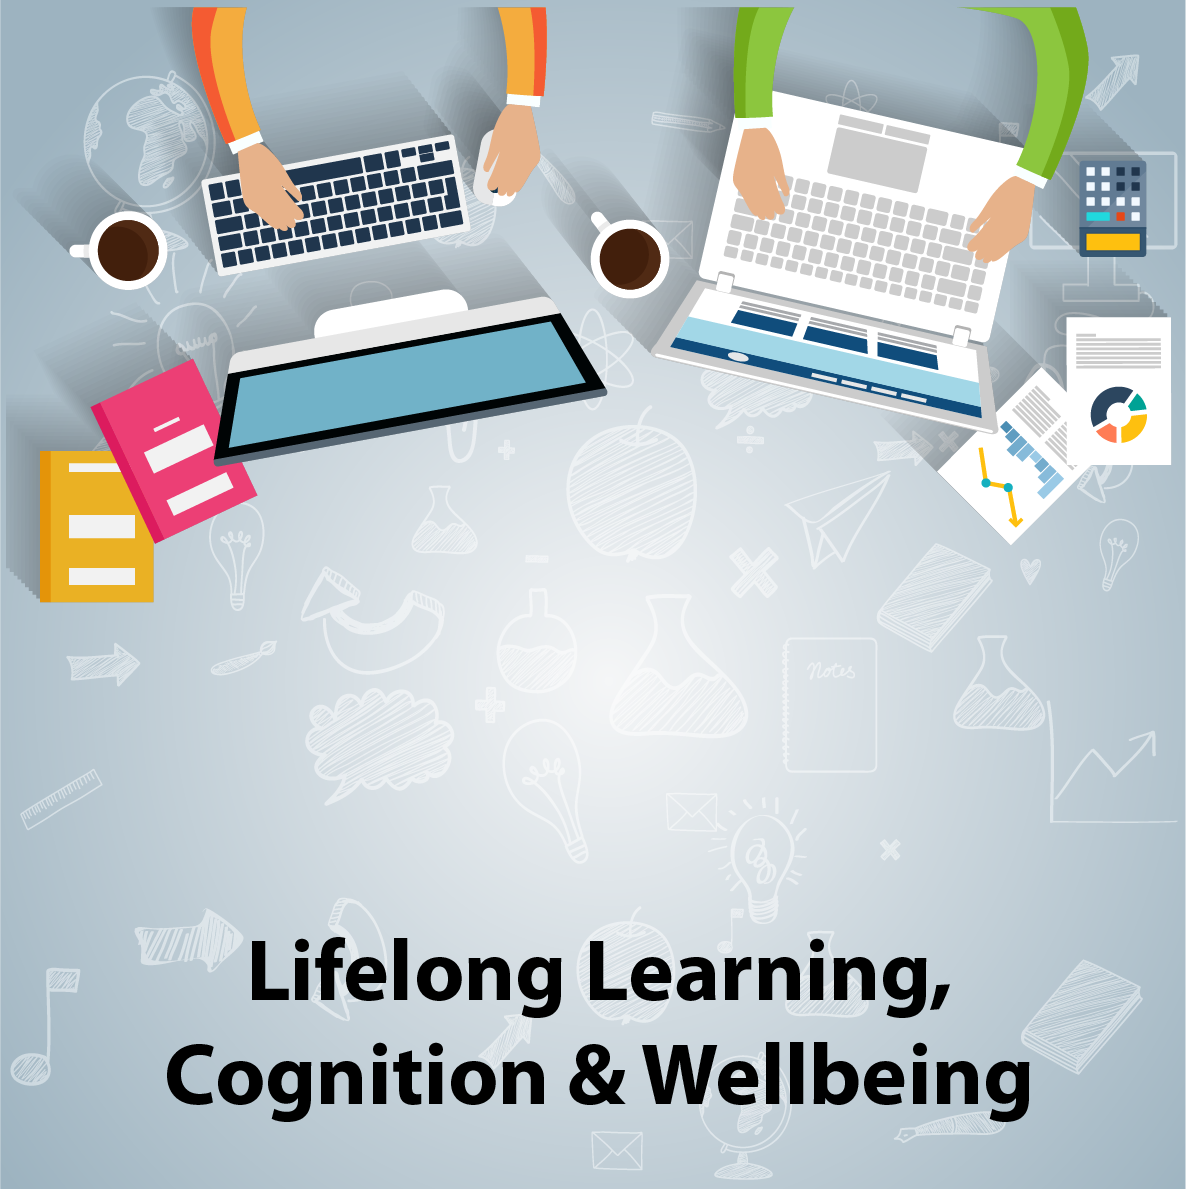 Lifelong Learning and Cognitive Well-being-01